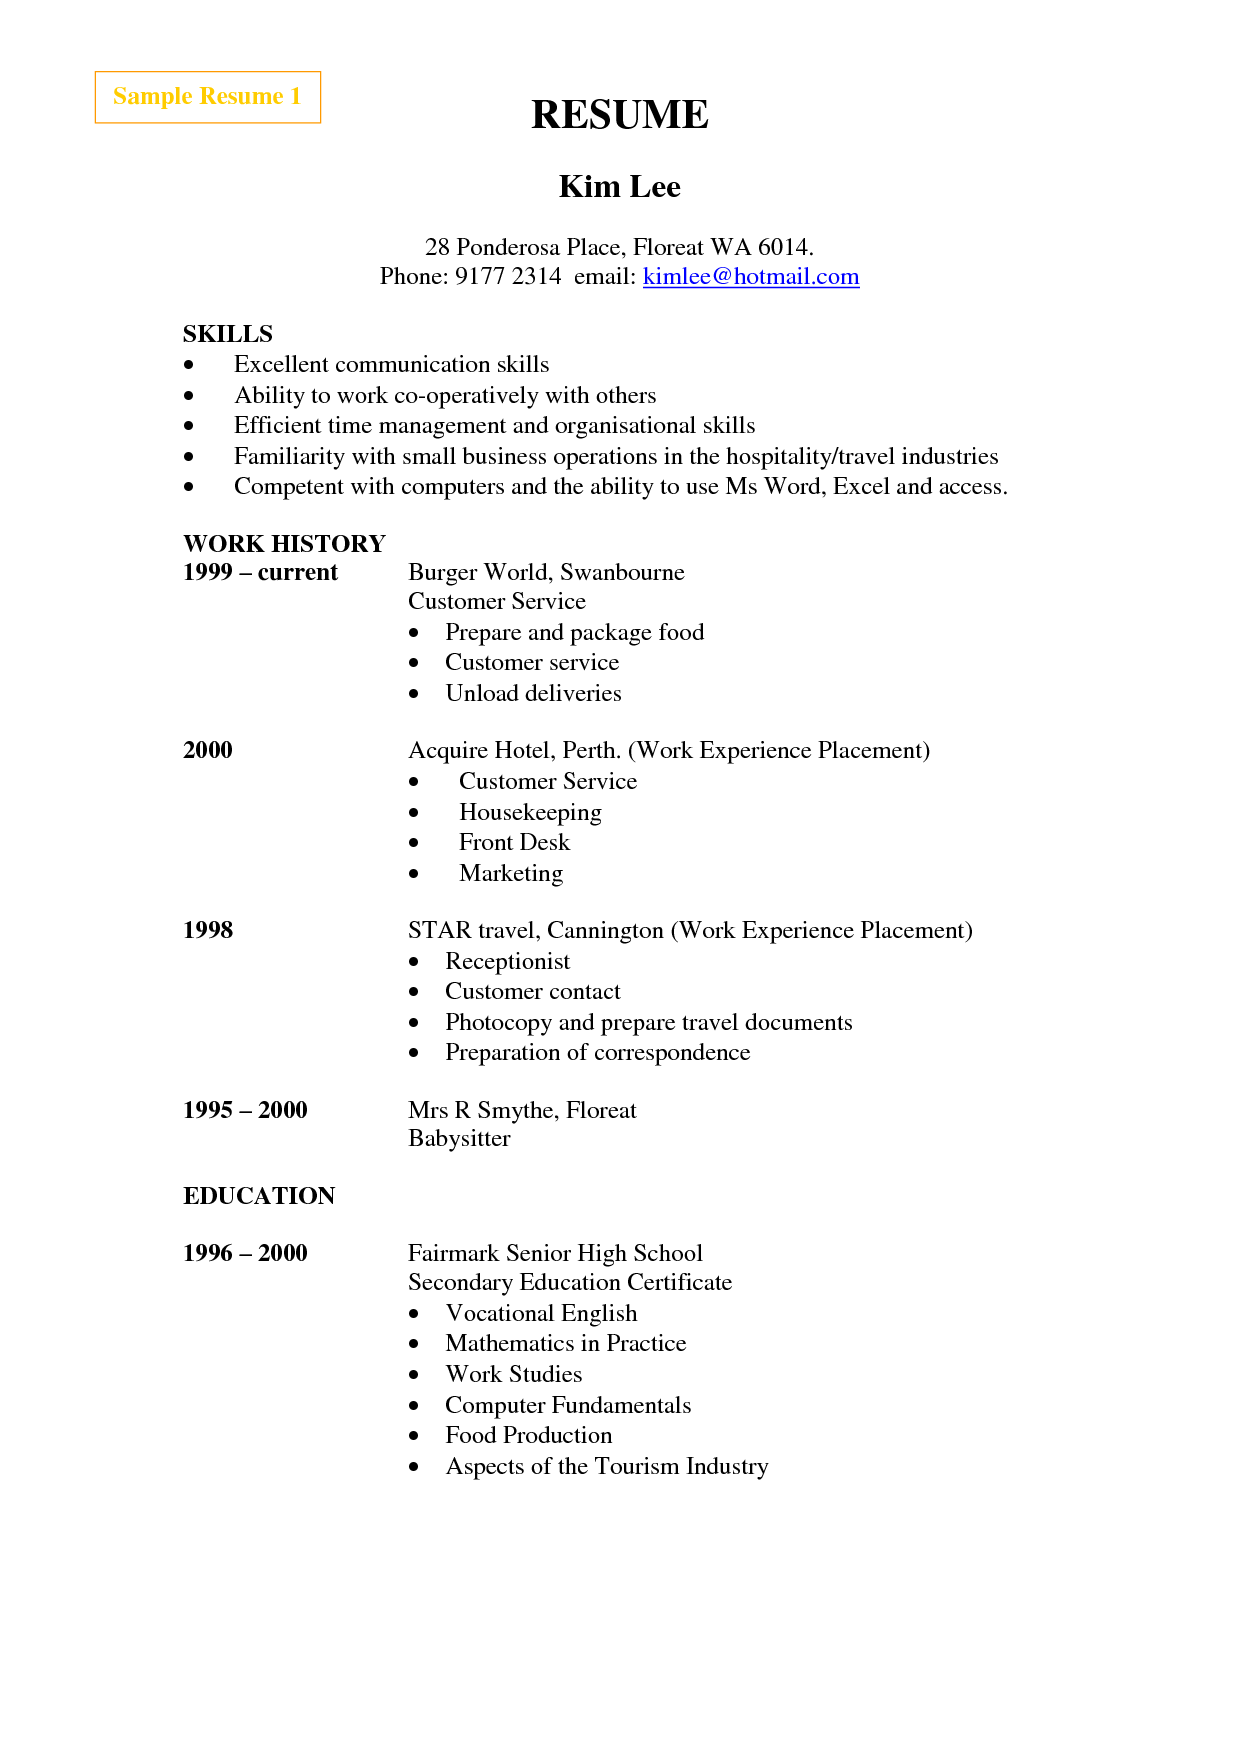 Sample resume for cleaner hotel cleaning example service sample resume yelopaper Image collections